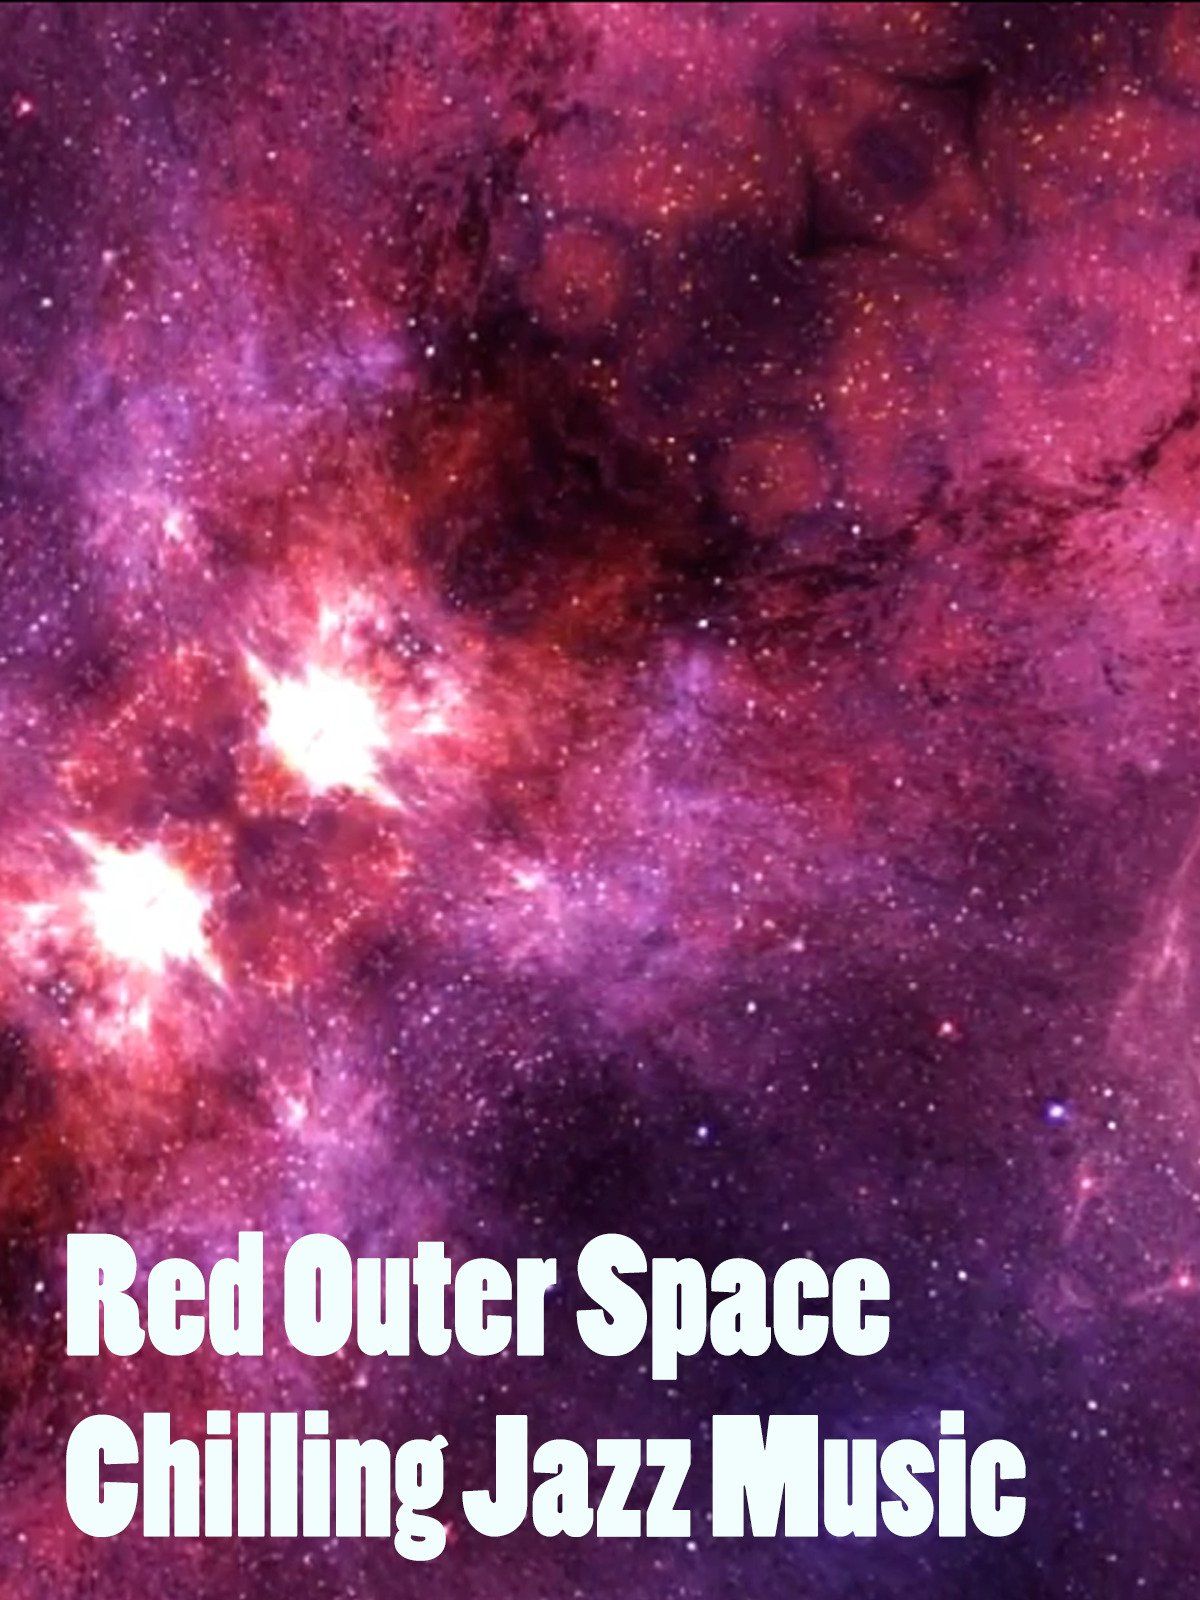 Red Outer Space Chilling Jazz Music